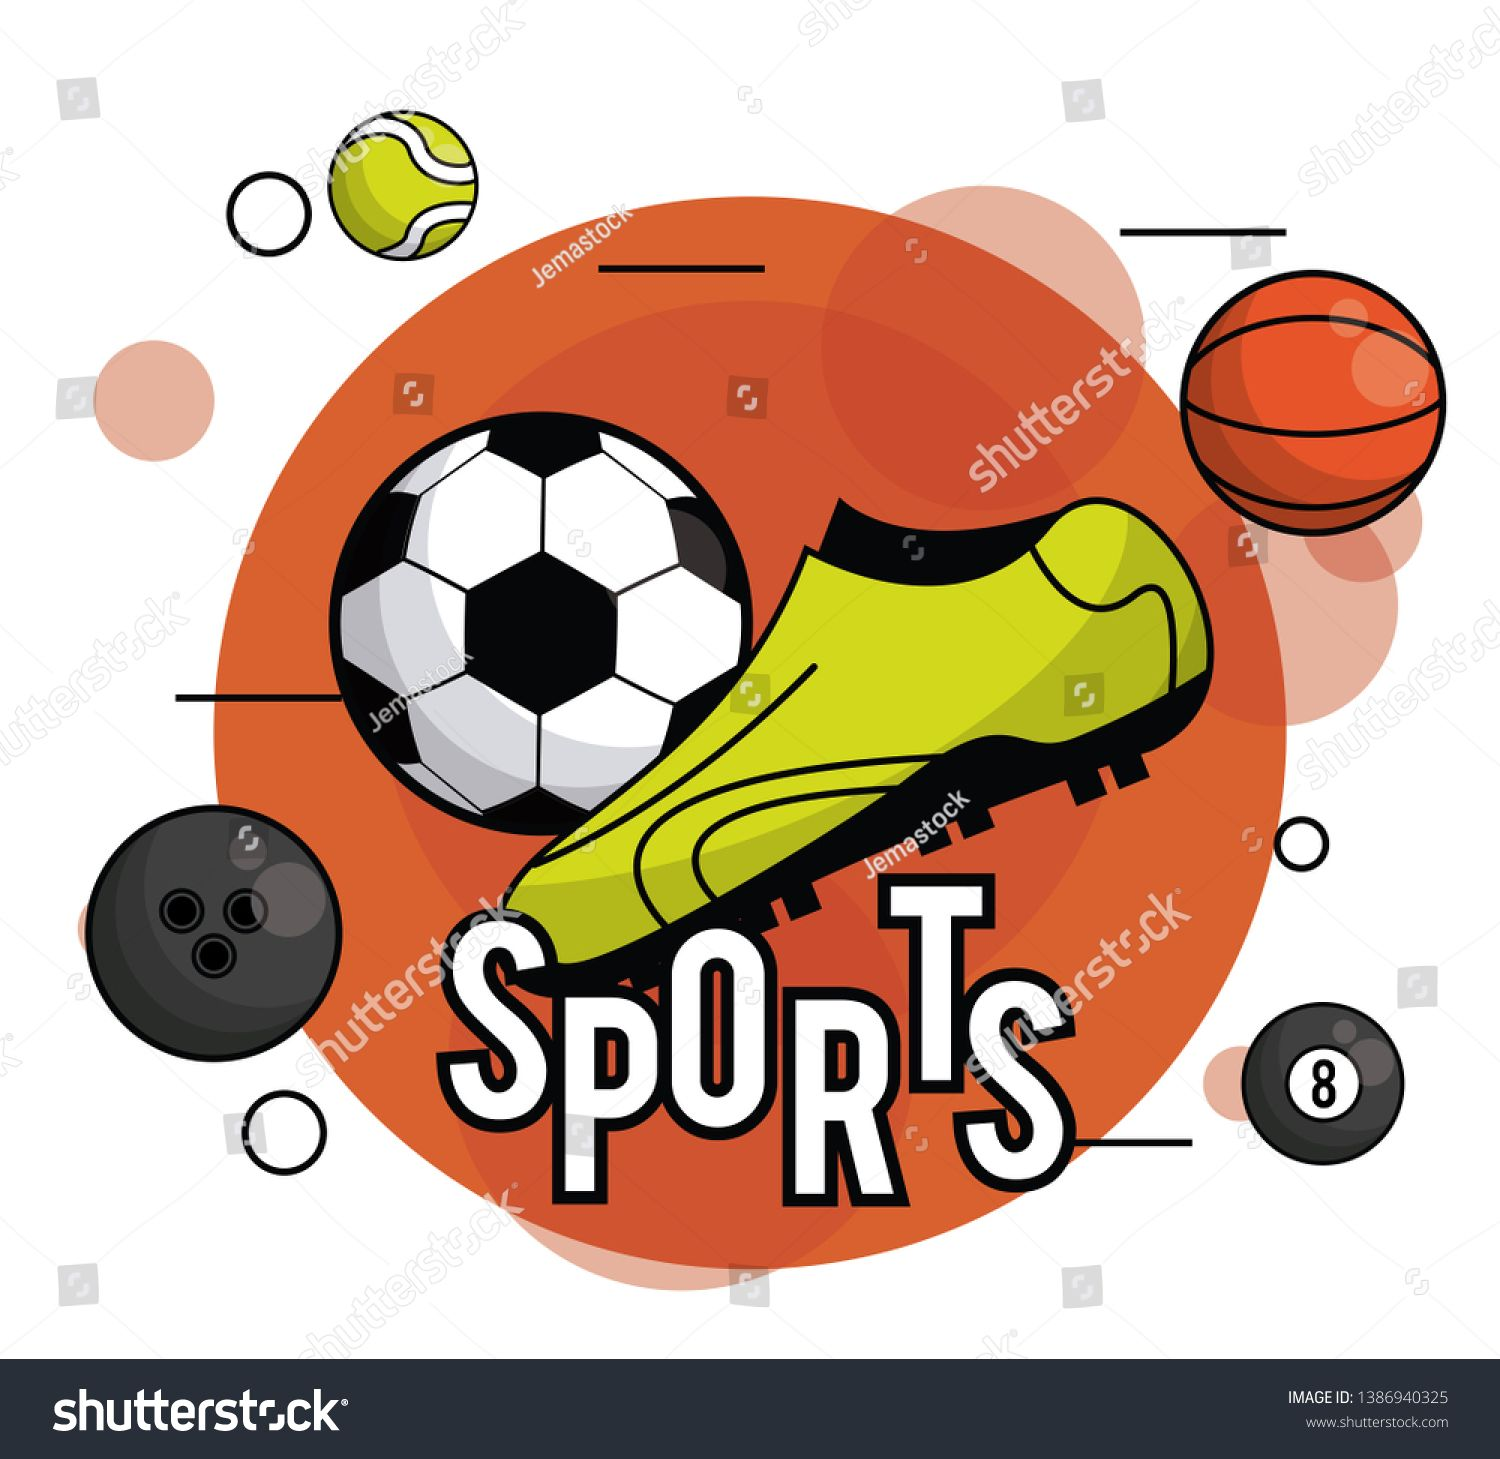 Sports Balls Equipment Vibrant Card Round Frame Ad Sponsored Equipment Balls Sports Frame With Images Sports Balls Sports Frames Sports